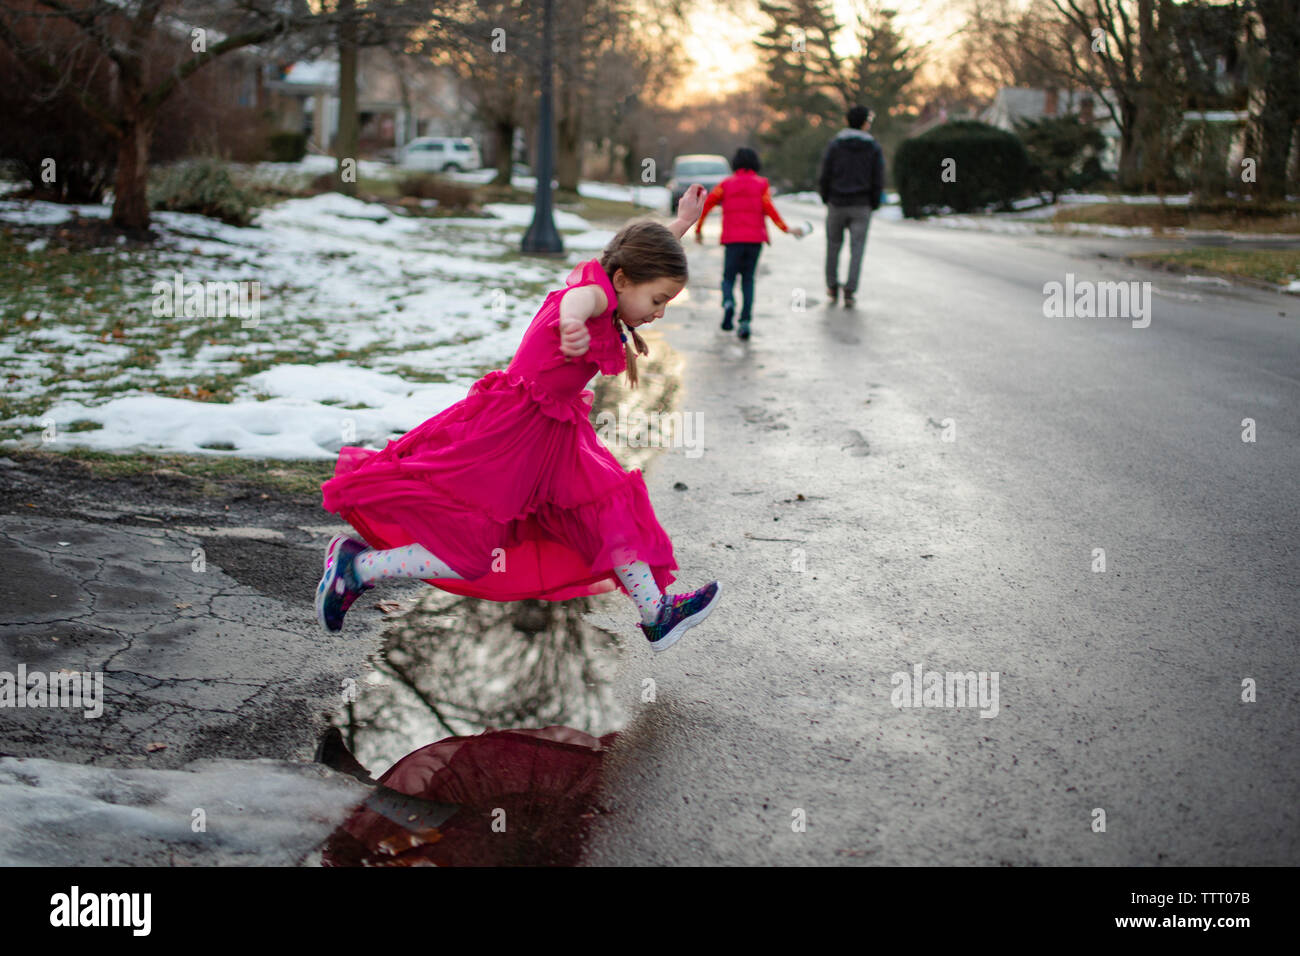 A little girl in long dress leaps across puddle on walk with family Stock Photo